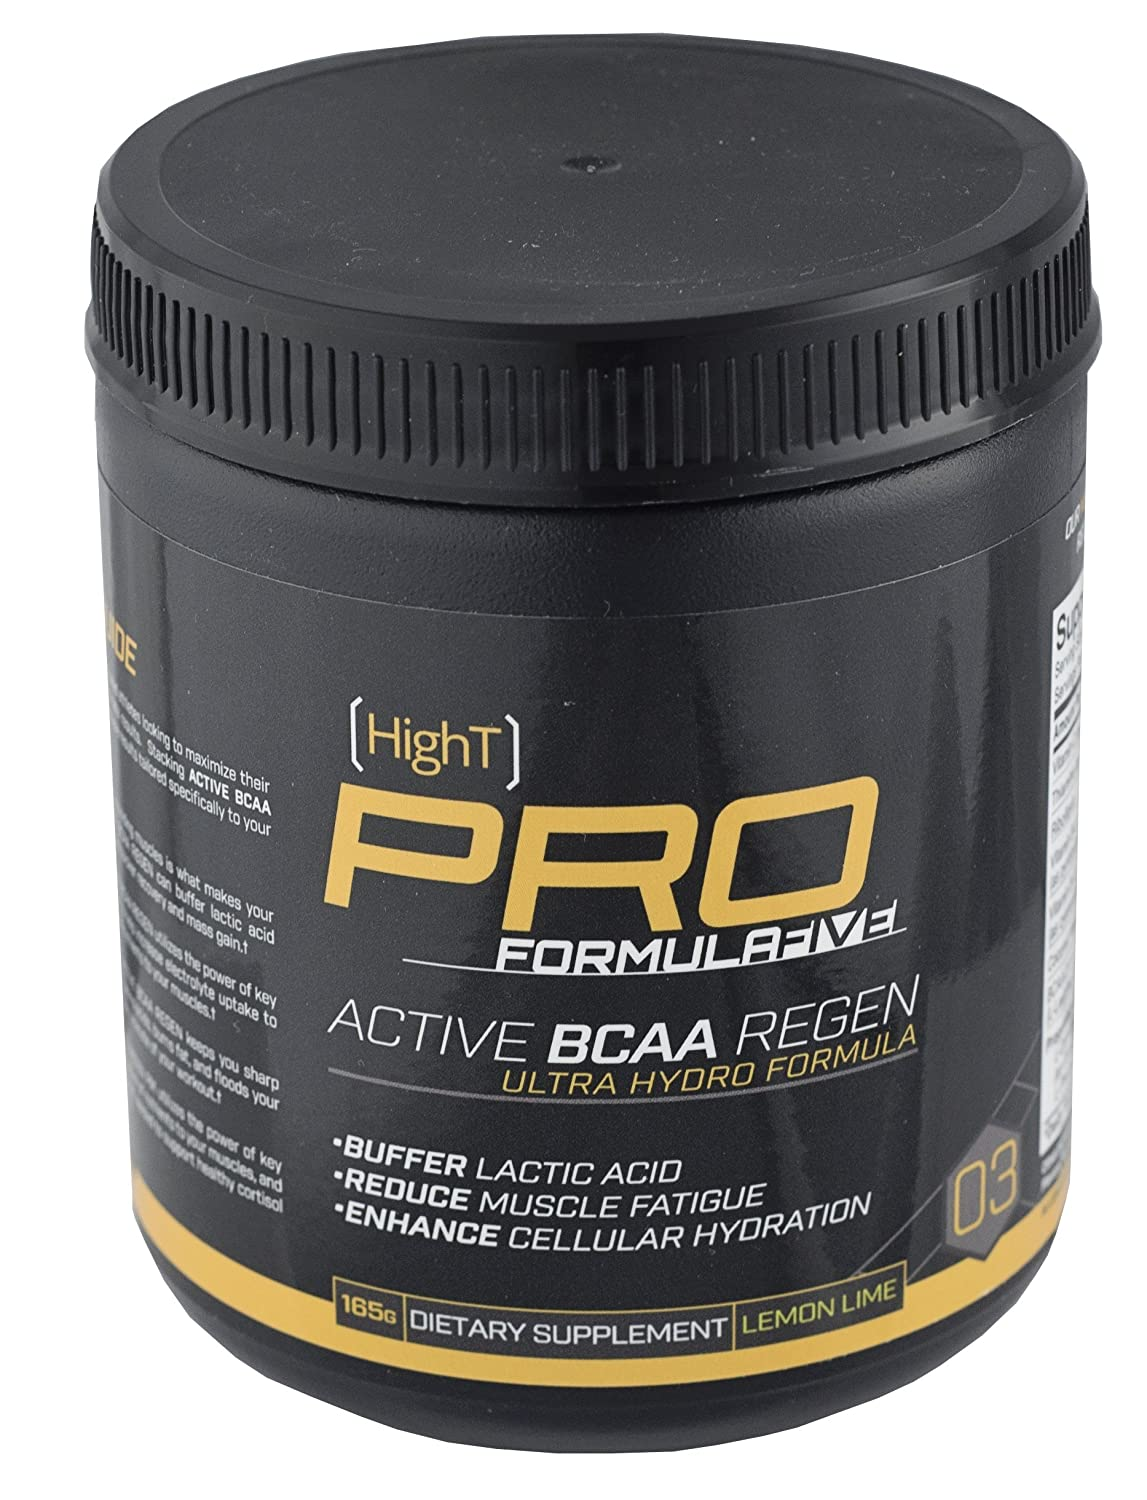 High T Pro Formula Five Active BCAA Regen